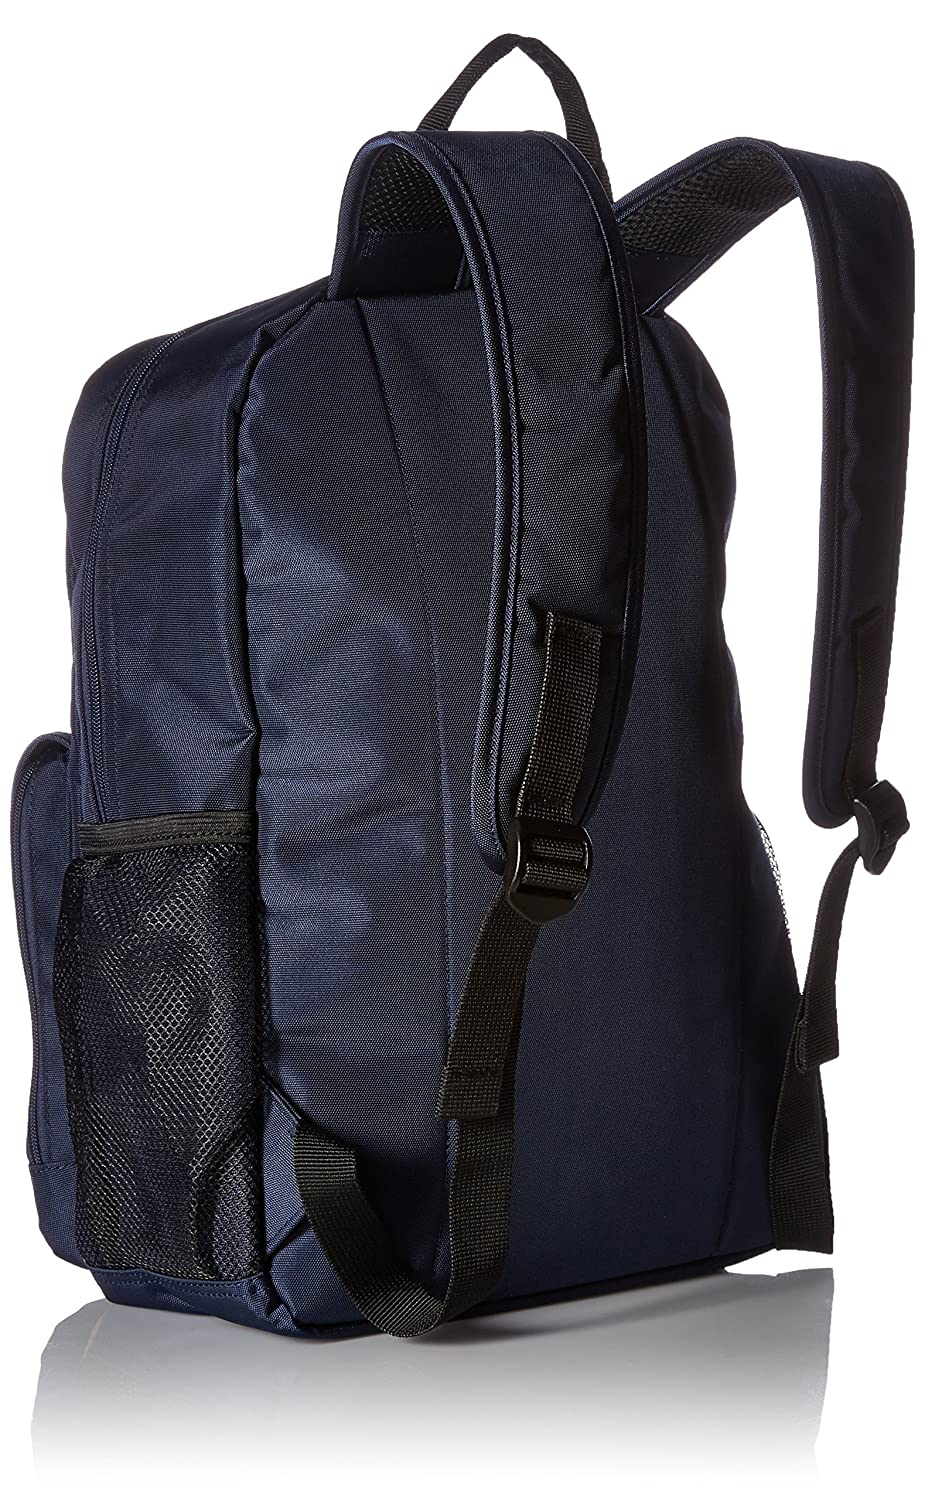 Buxton Mens Expedition Ii Trekker Backpack Navy Buxton Men/'s Furnishings EX03426.NA